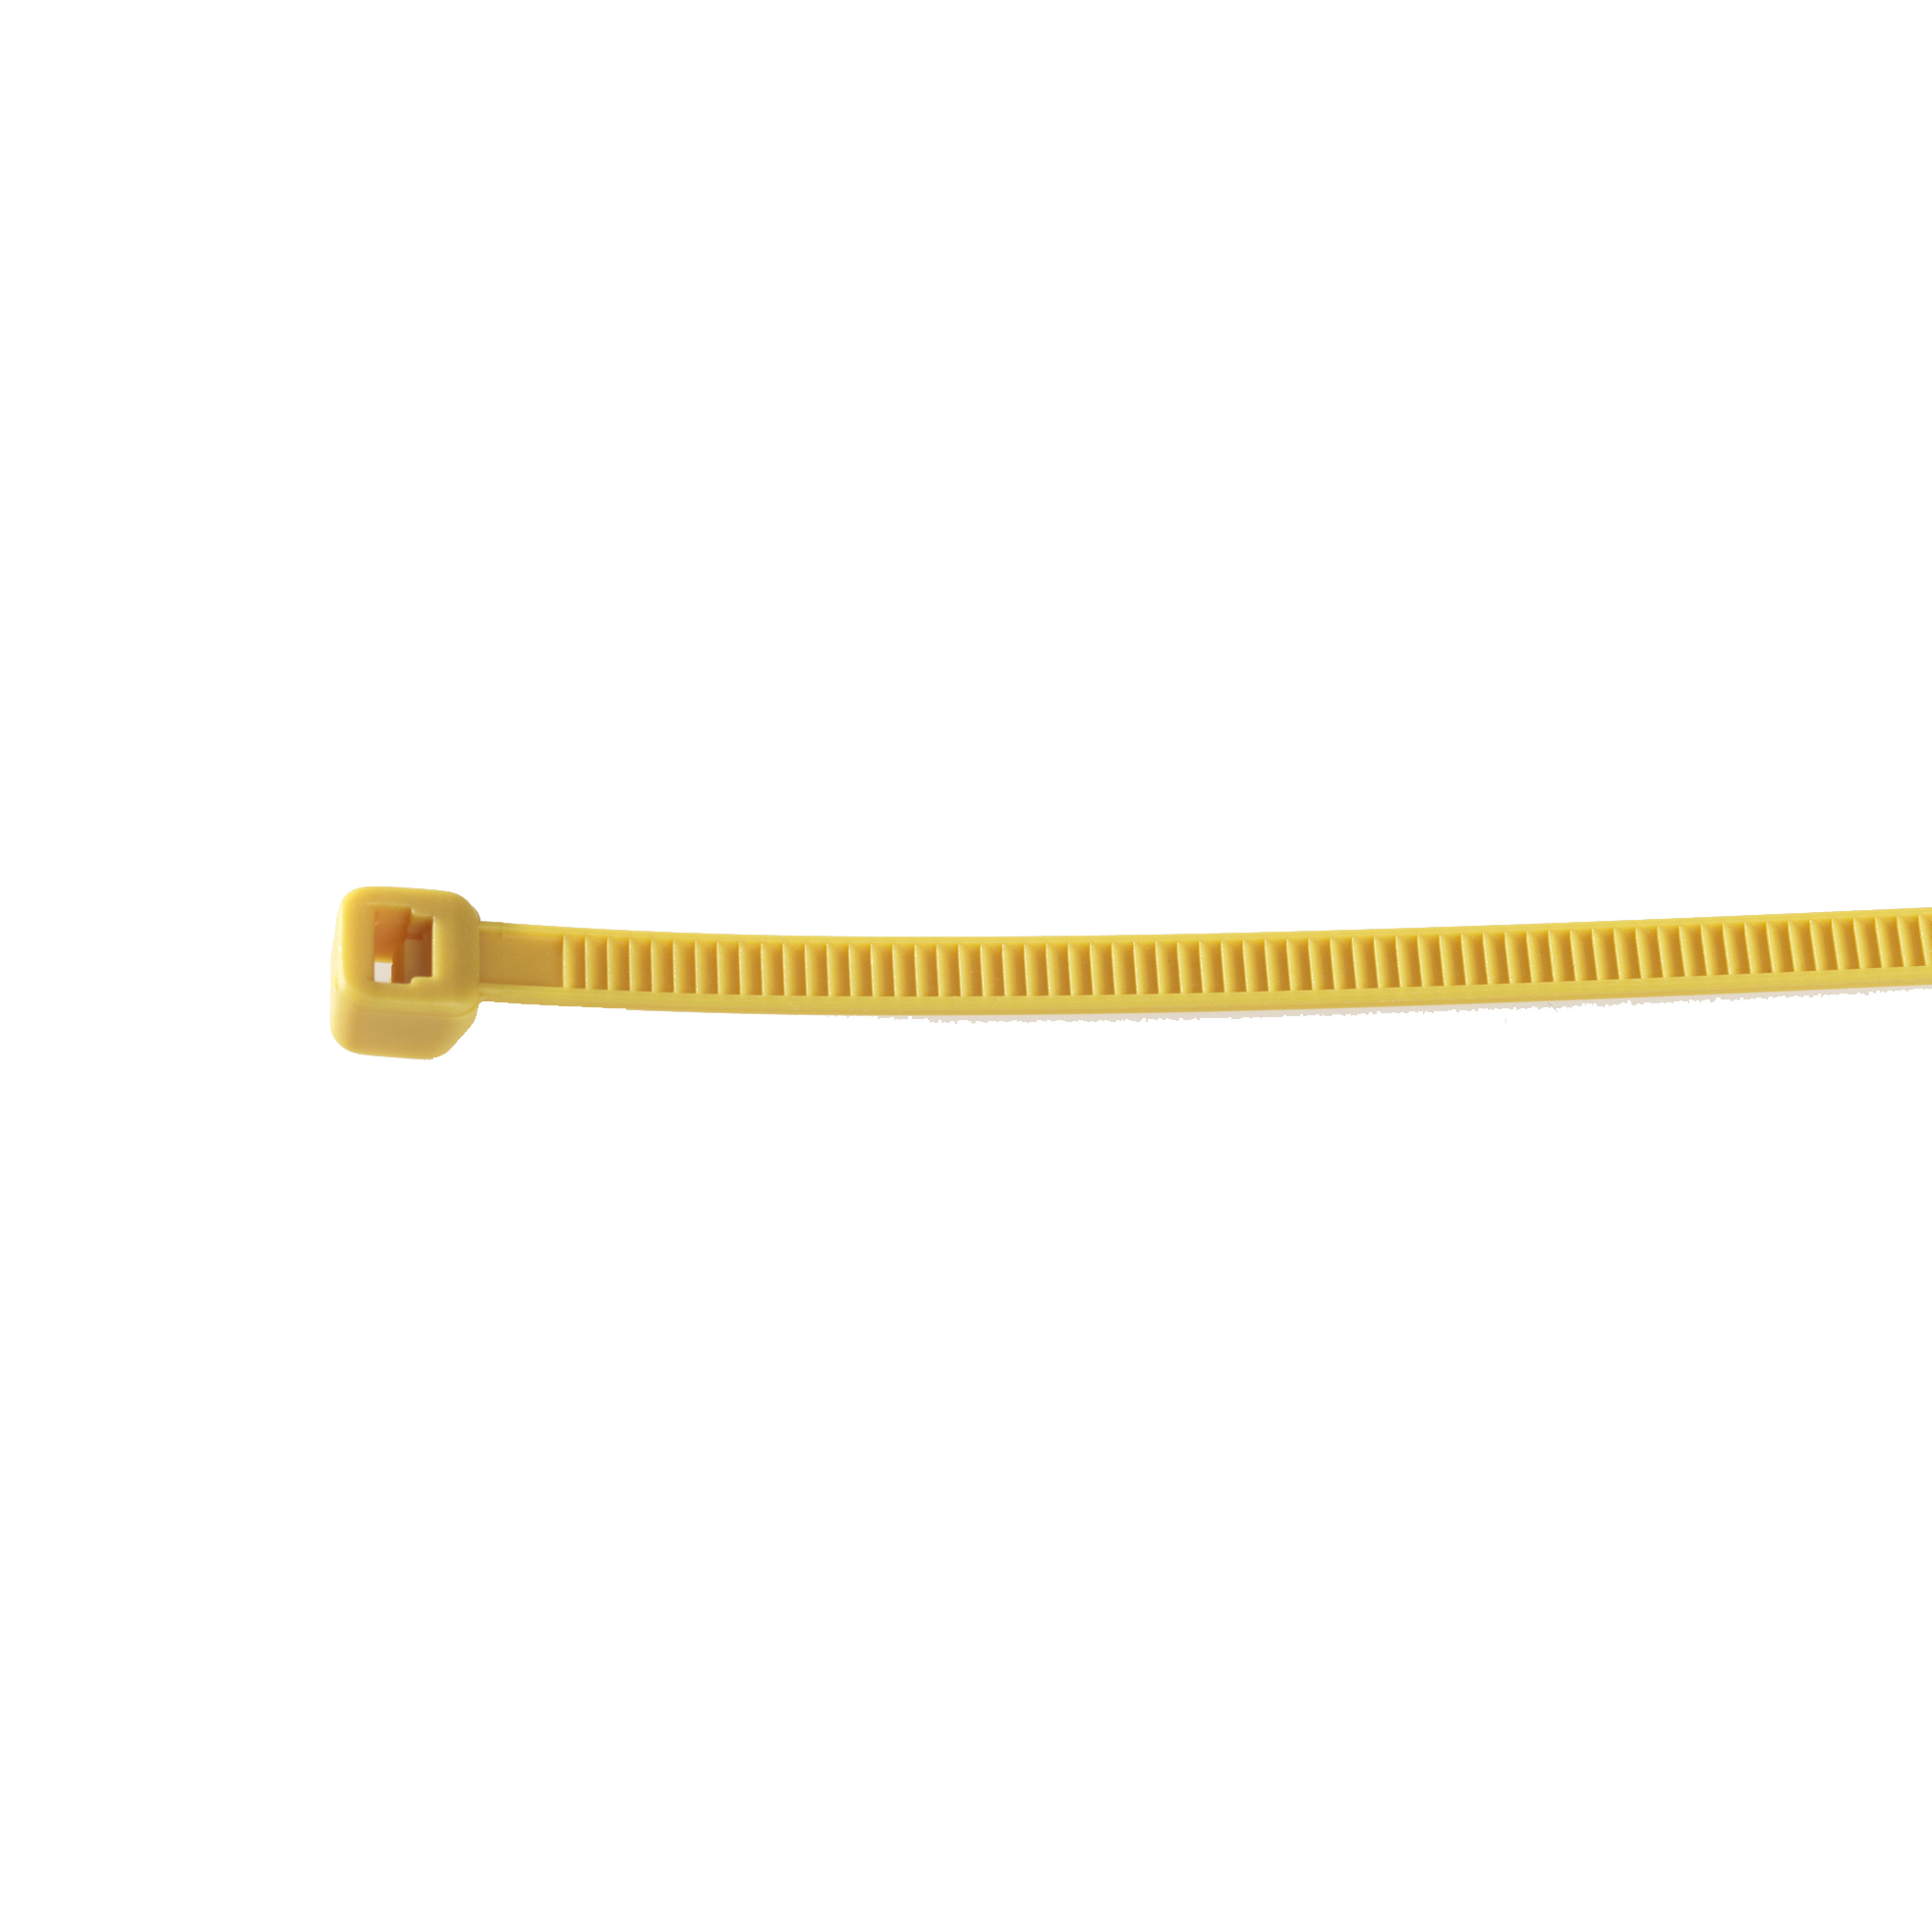 Large, Yellow Cable Tie Image